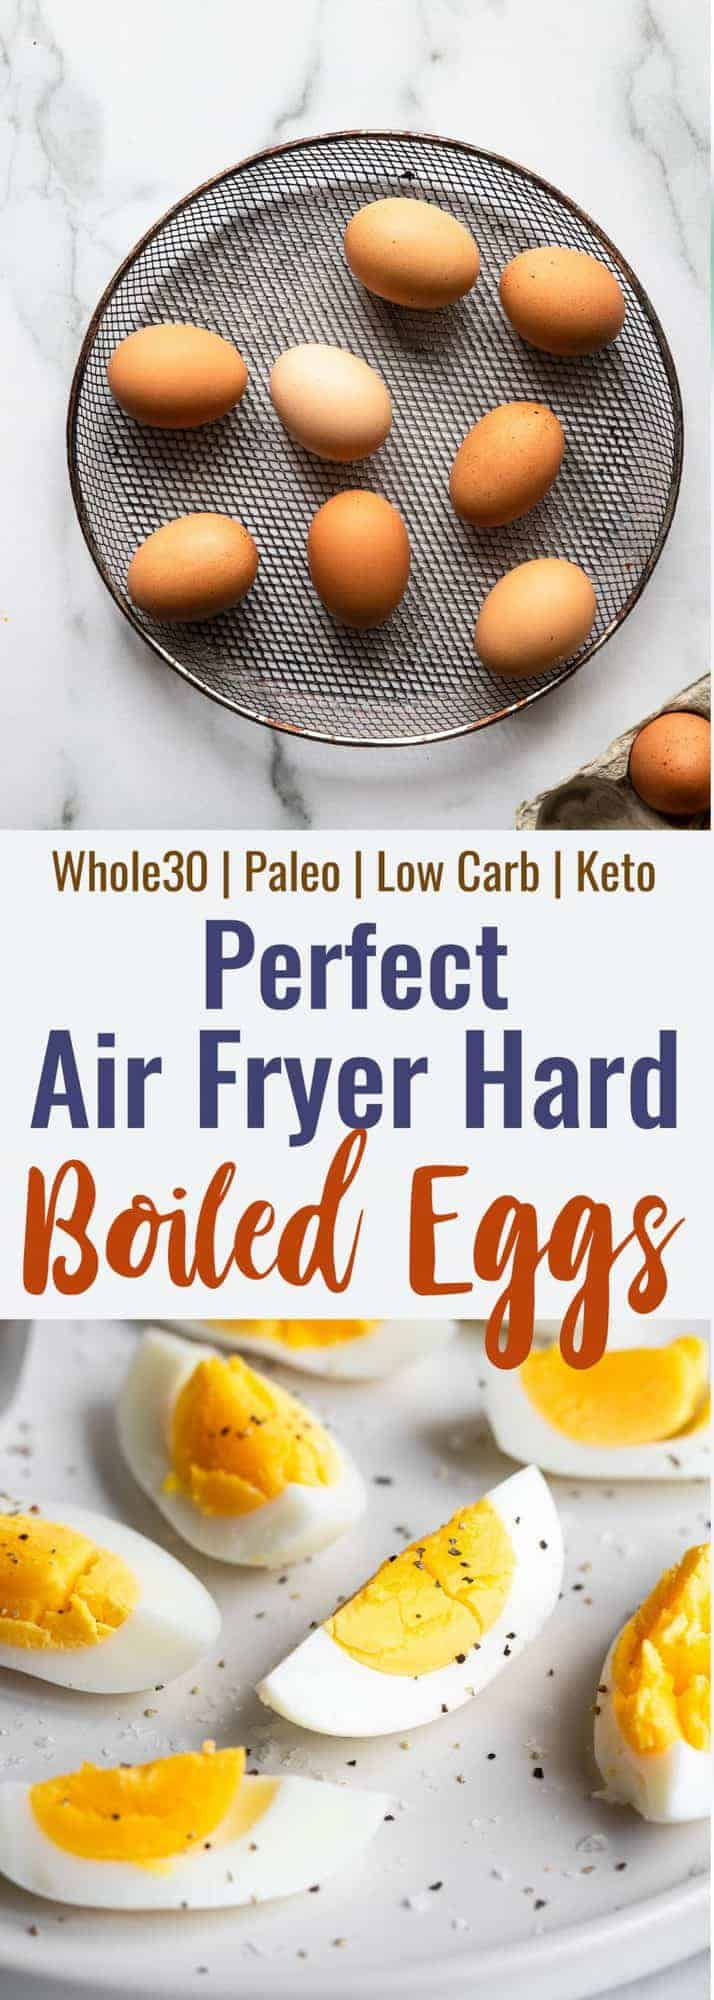 air fryer hard boiled eggs pic image scaled 1